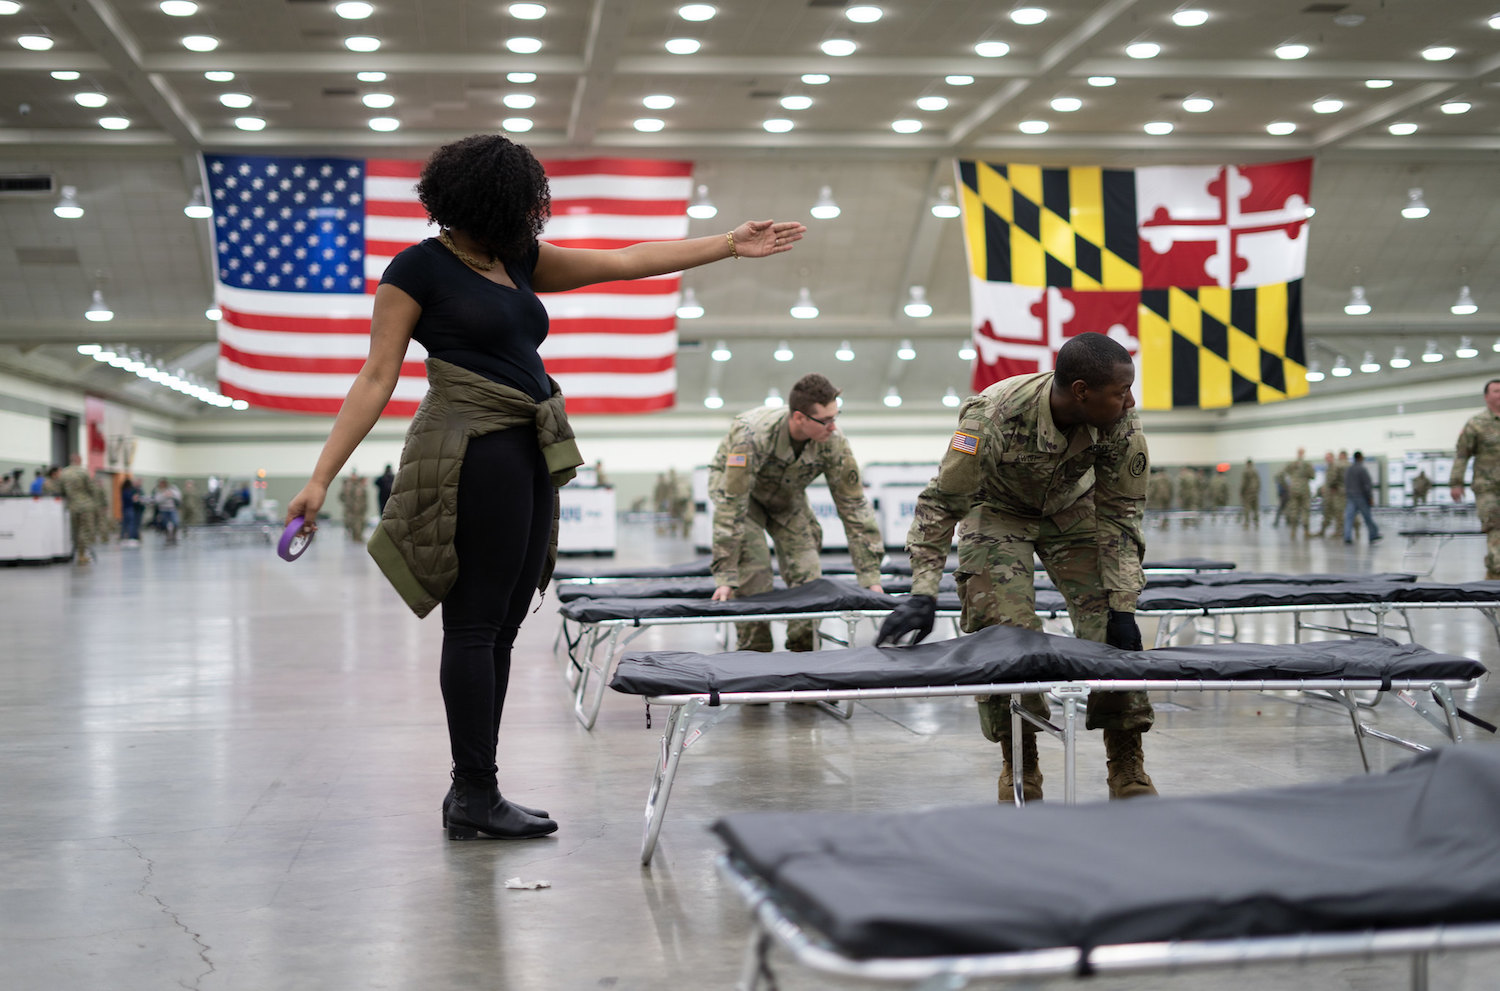 civilans and national guard set up a hospital bed in a convention center as part of COVID-19 management